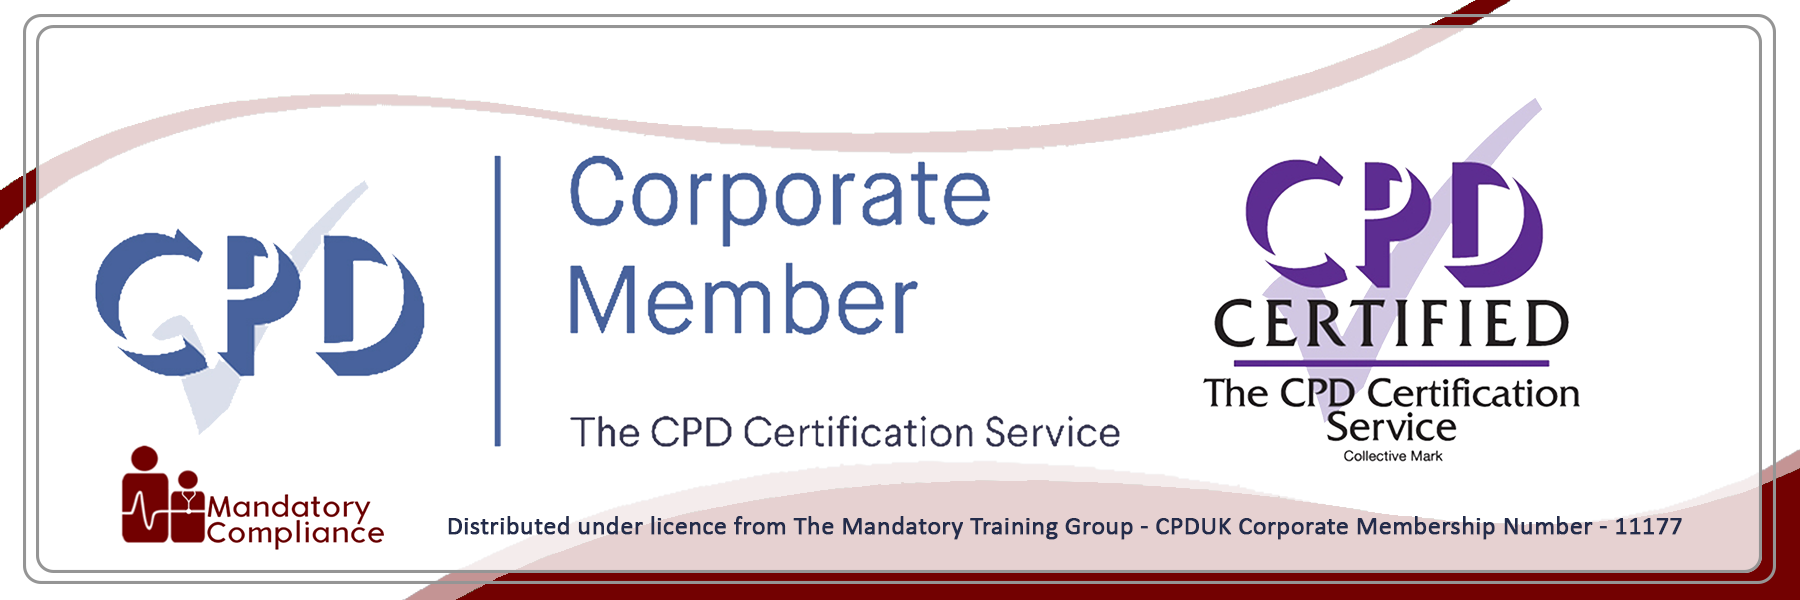 Archiving and Records Management - Online Training Course - CPDUK Accredited - Mandatory Compliance UK -